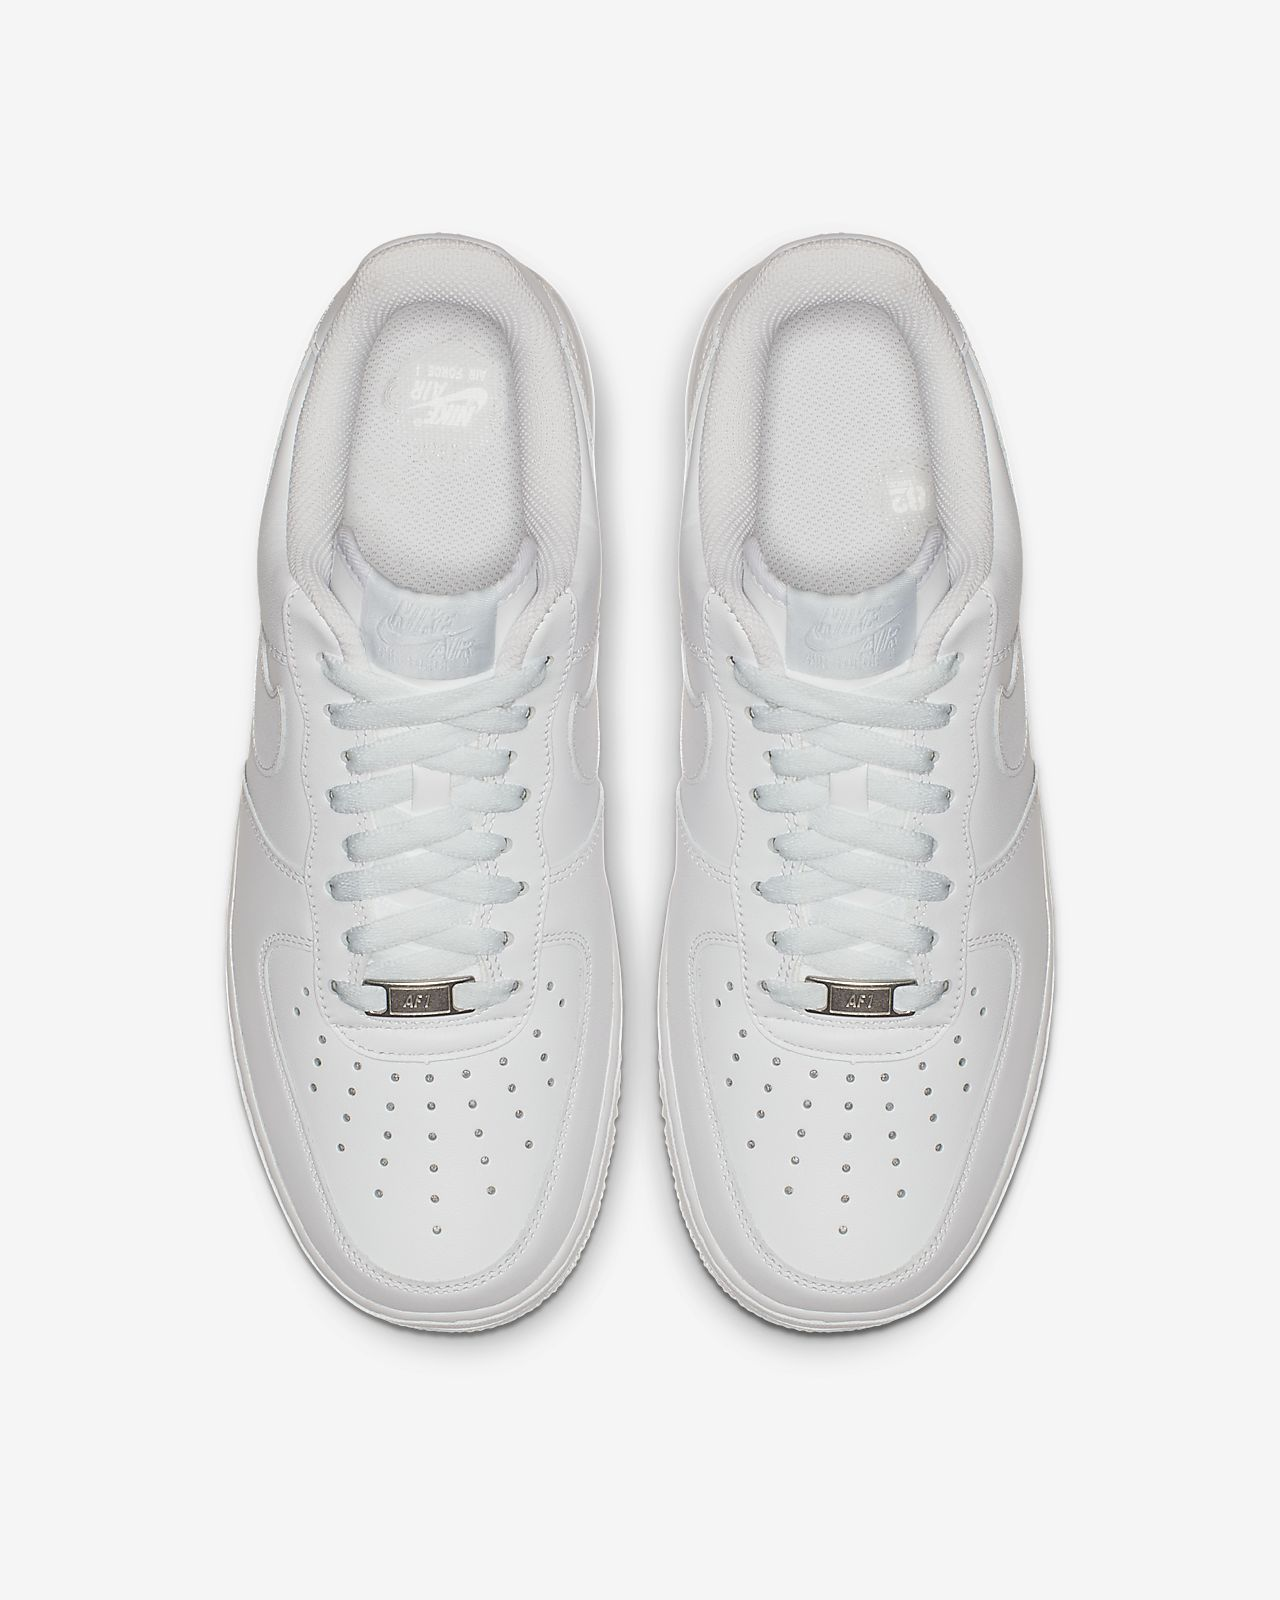 new style 83f59 7ca1c Nike Air Force 1 '07 Women's Shoe